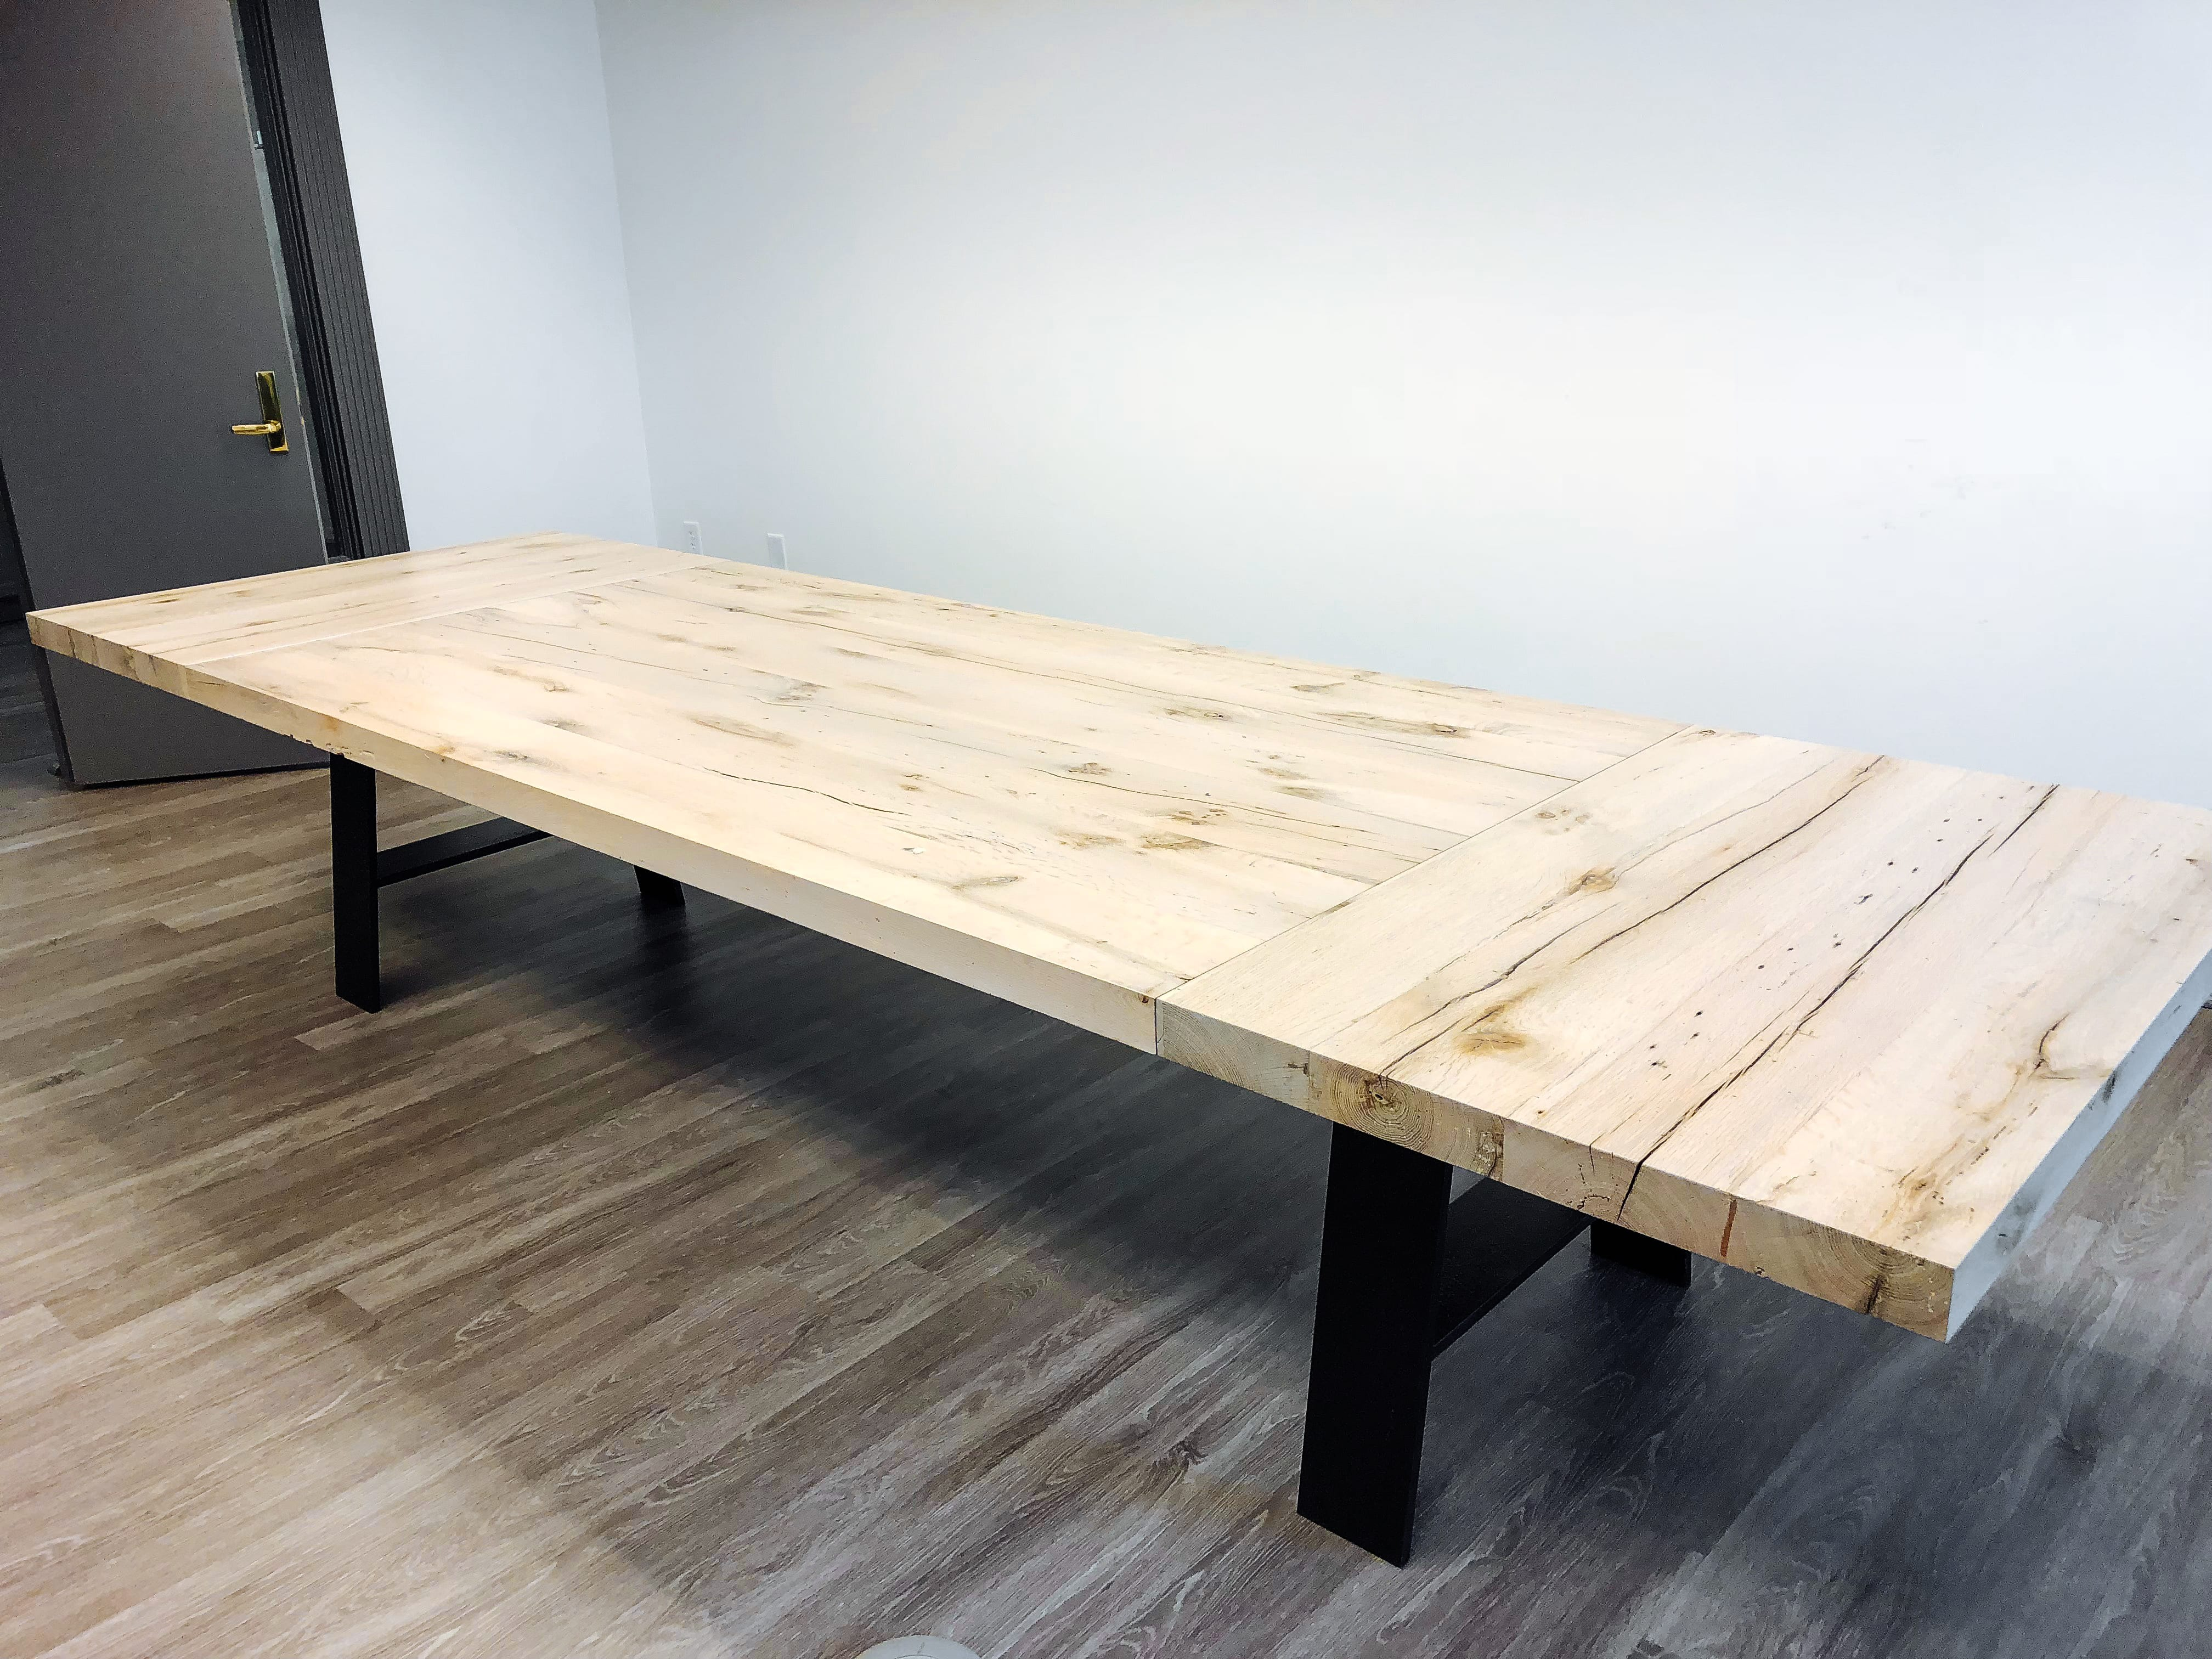 Rustic Wooden table with Steel black legs